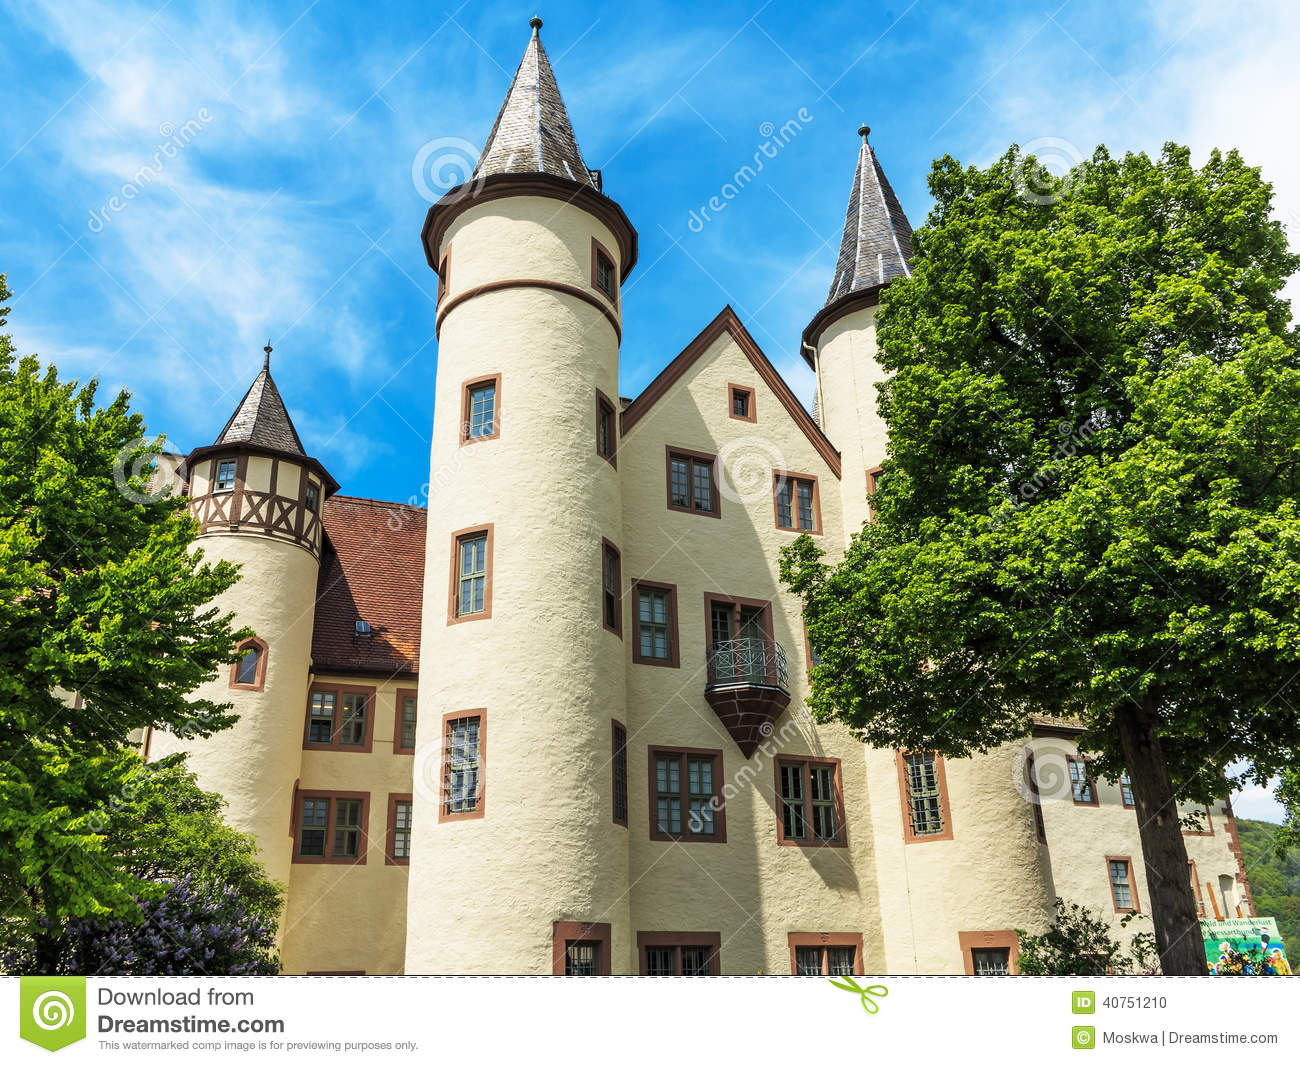 Snow White Castle In Lohr Am Main In The Spessart Mountains.